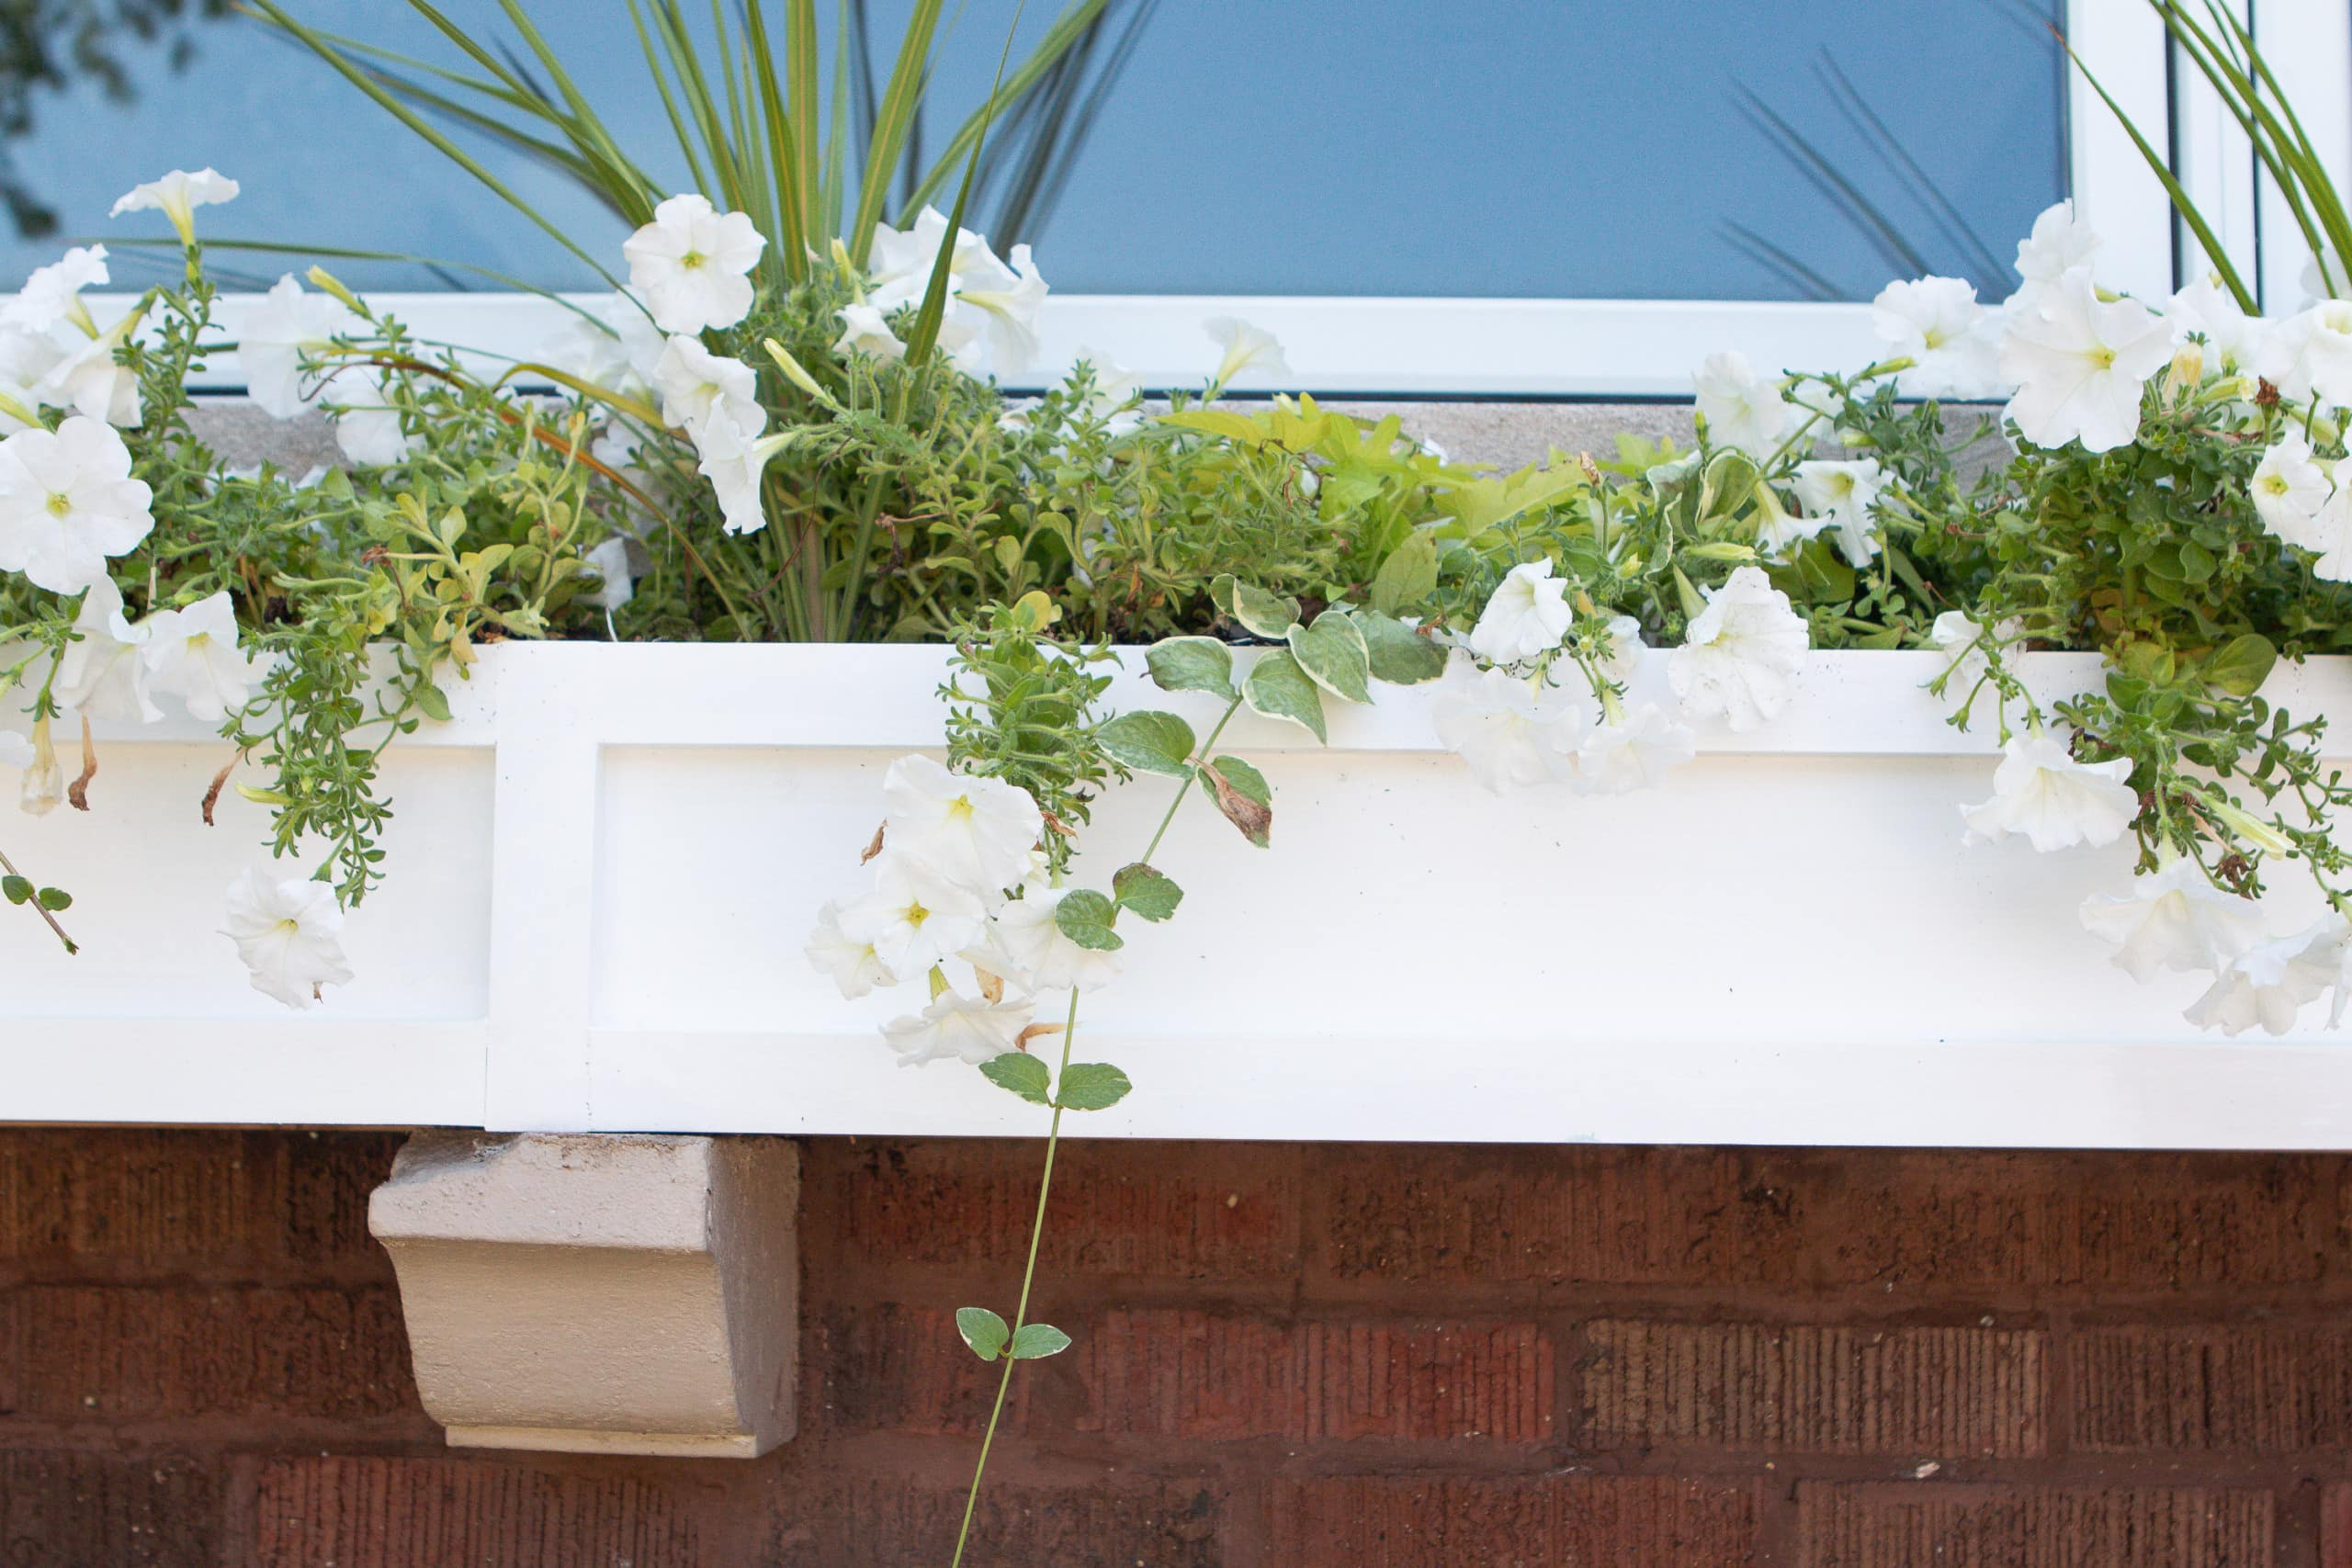 Putting plants in our window box